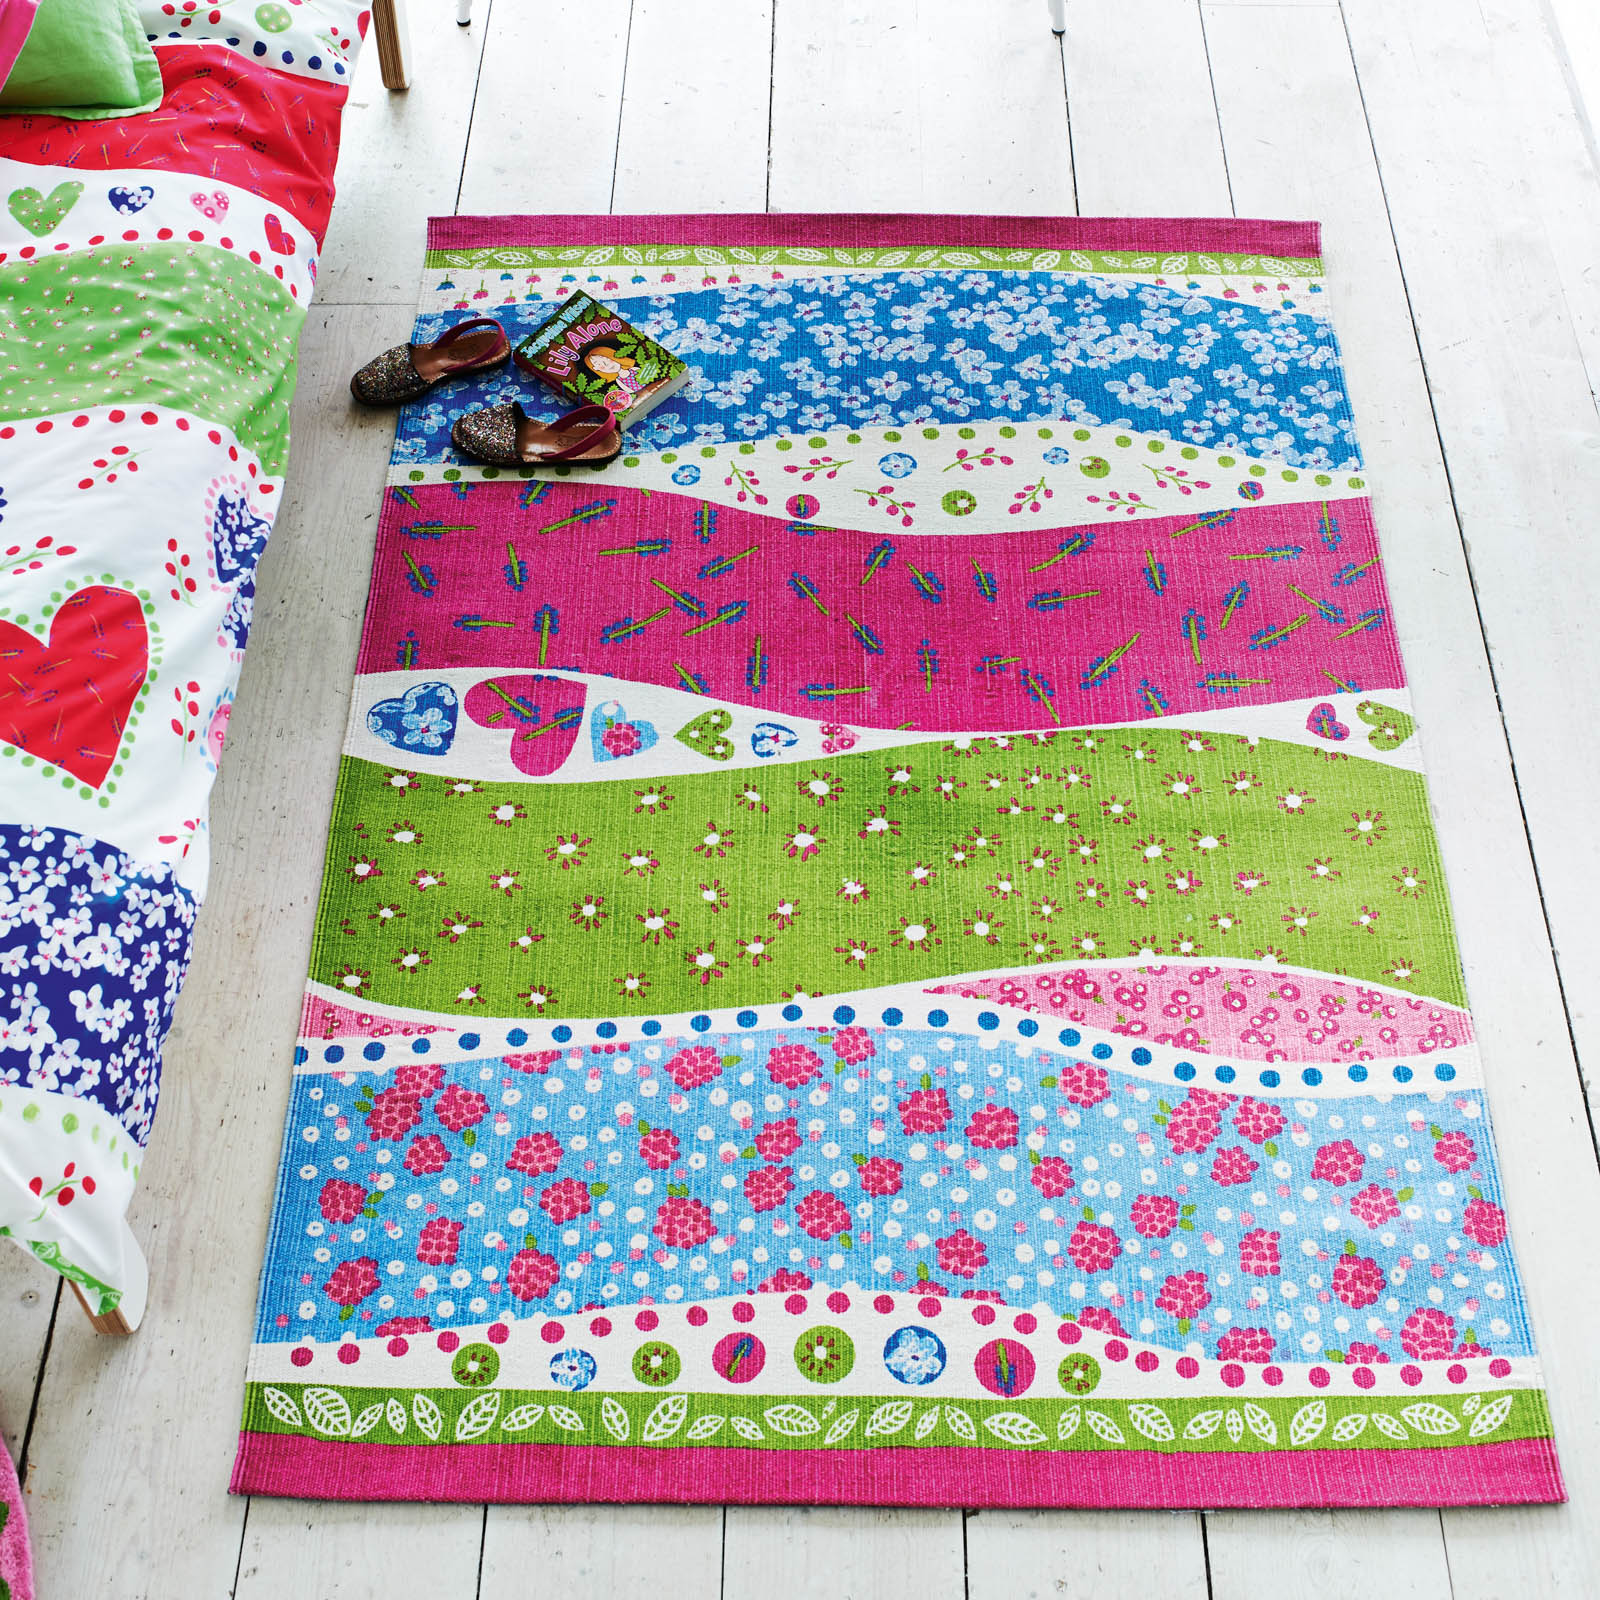 Dotty Hearts Fuchia Rugs by Designers Guild